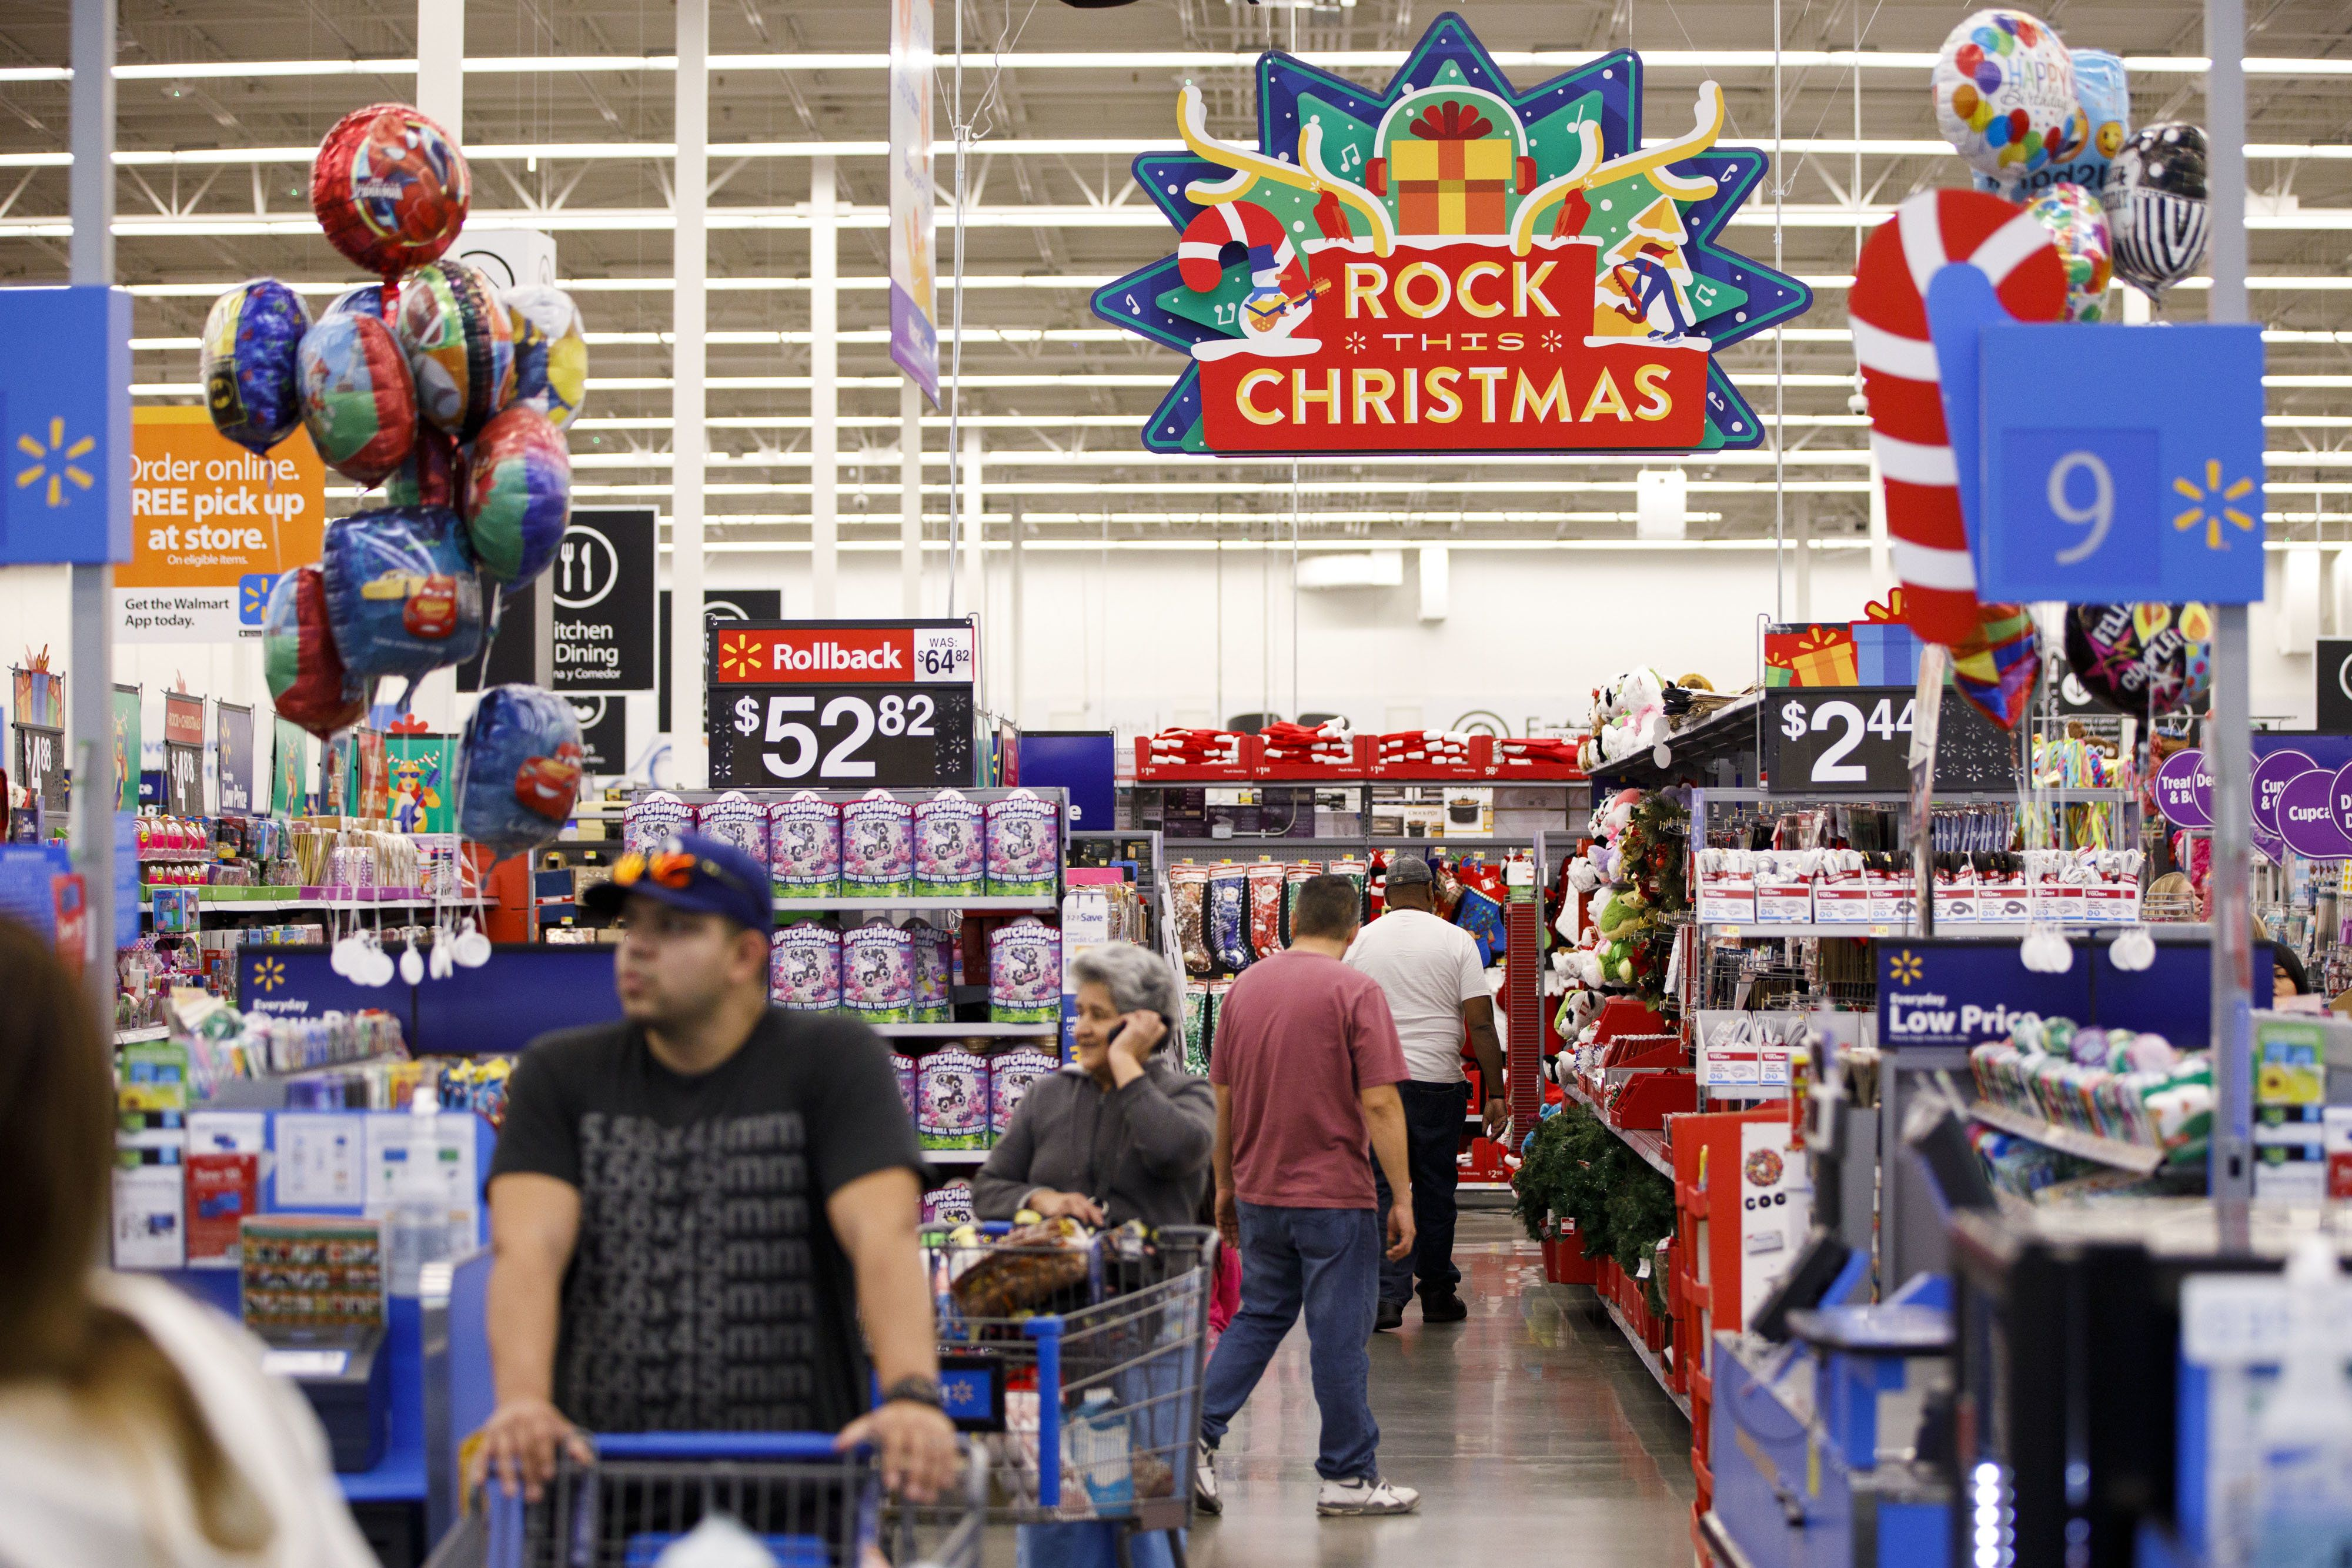 Christmas signage is displayed as customers shop at a Wal-Mart Stores Inc. location in Burbank, California, U.S., on Thursday, Nov. 16, 2017. Black Friday, the day after Thanksgiving, marks the traditional start to the U.S. holiday shopping season. Photographer: Patrick T. Fallon/Bloomberg via Getty Images